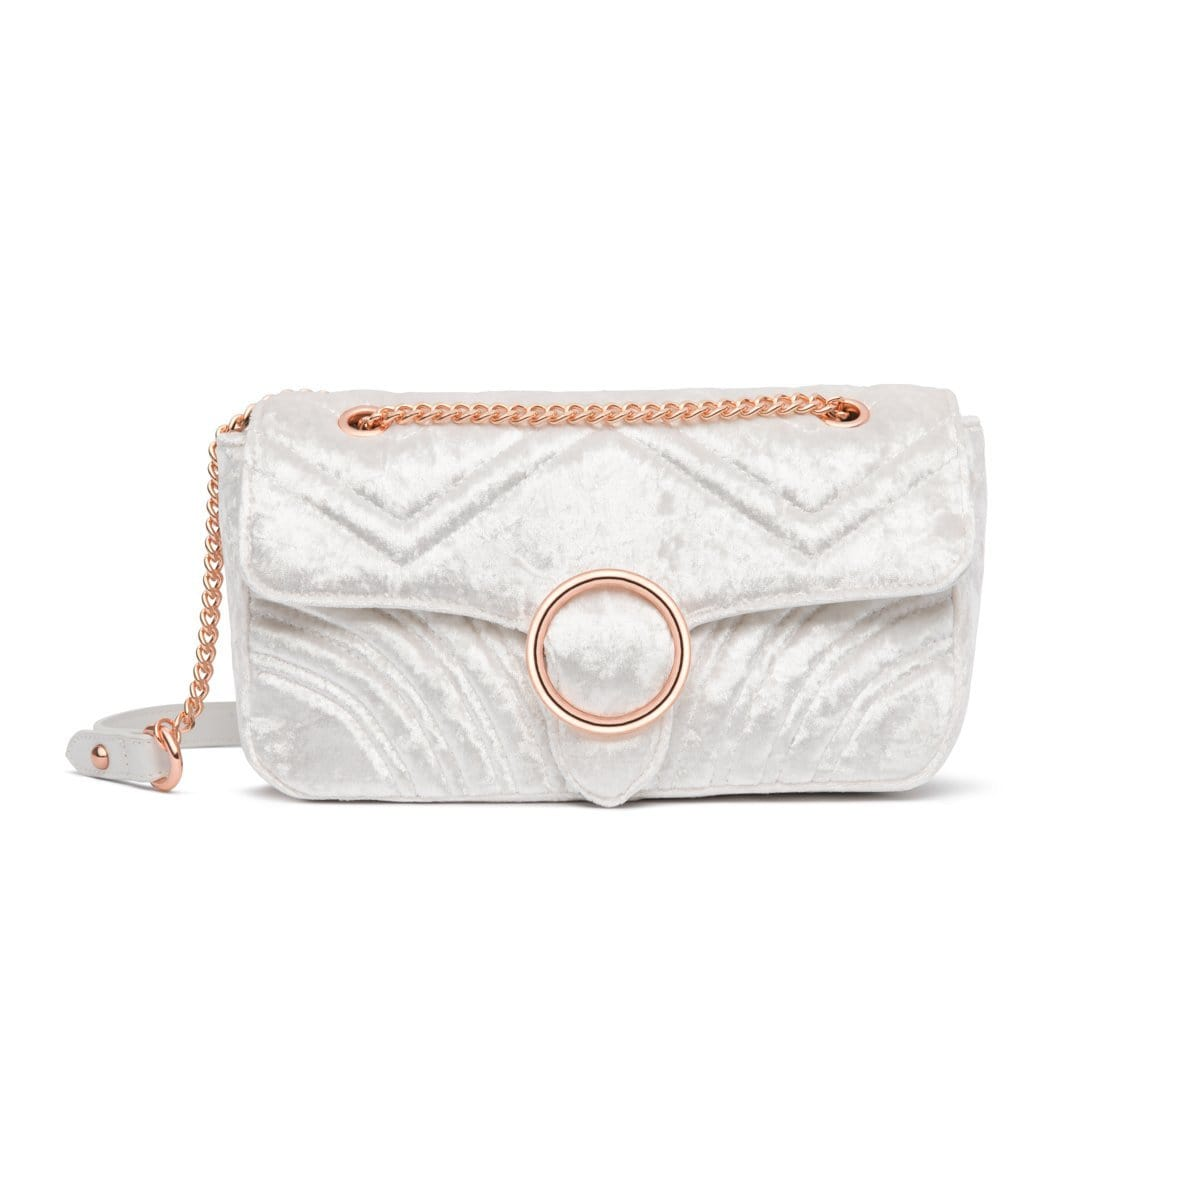 Snow White Gigi Handbag Rose Gold